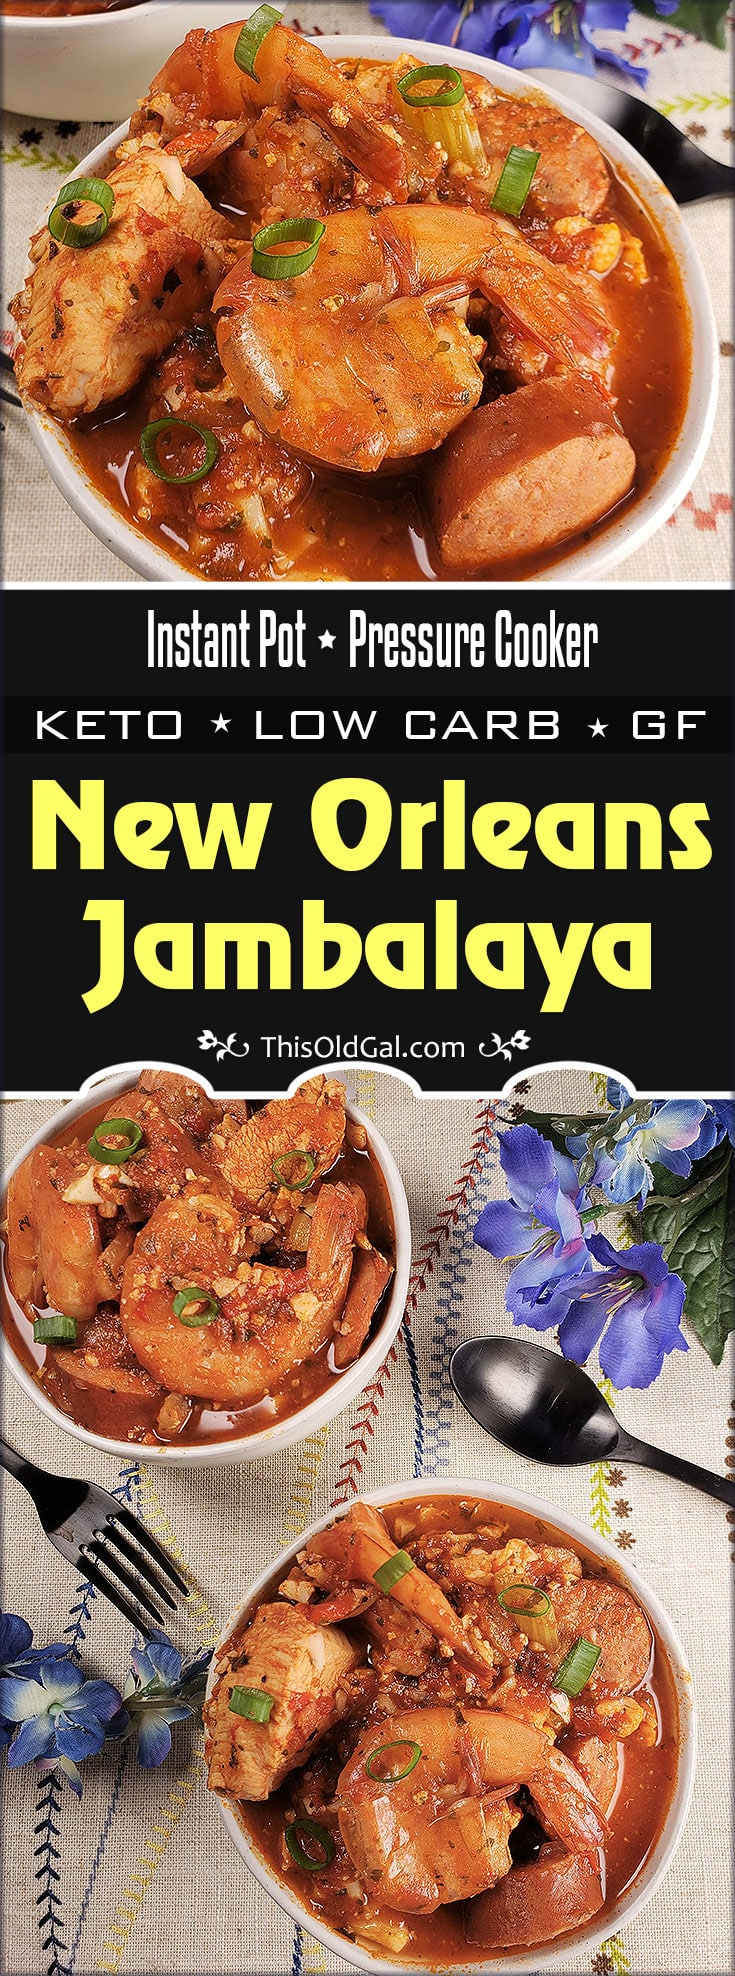 Pressure Cooker Creole New Orleans Jambalaya